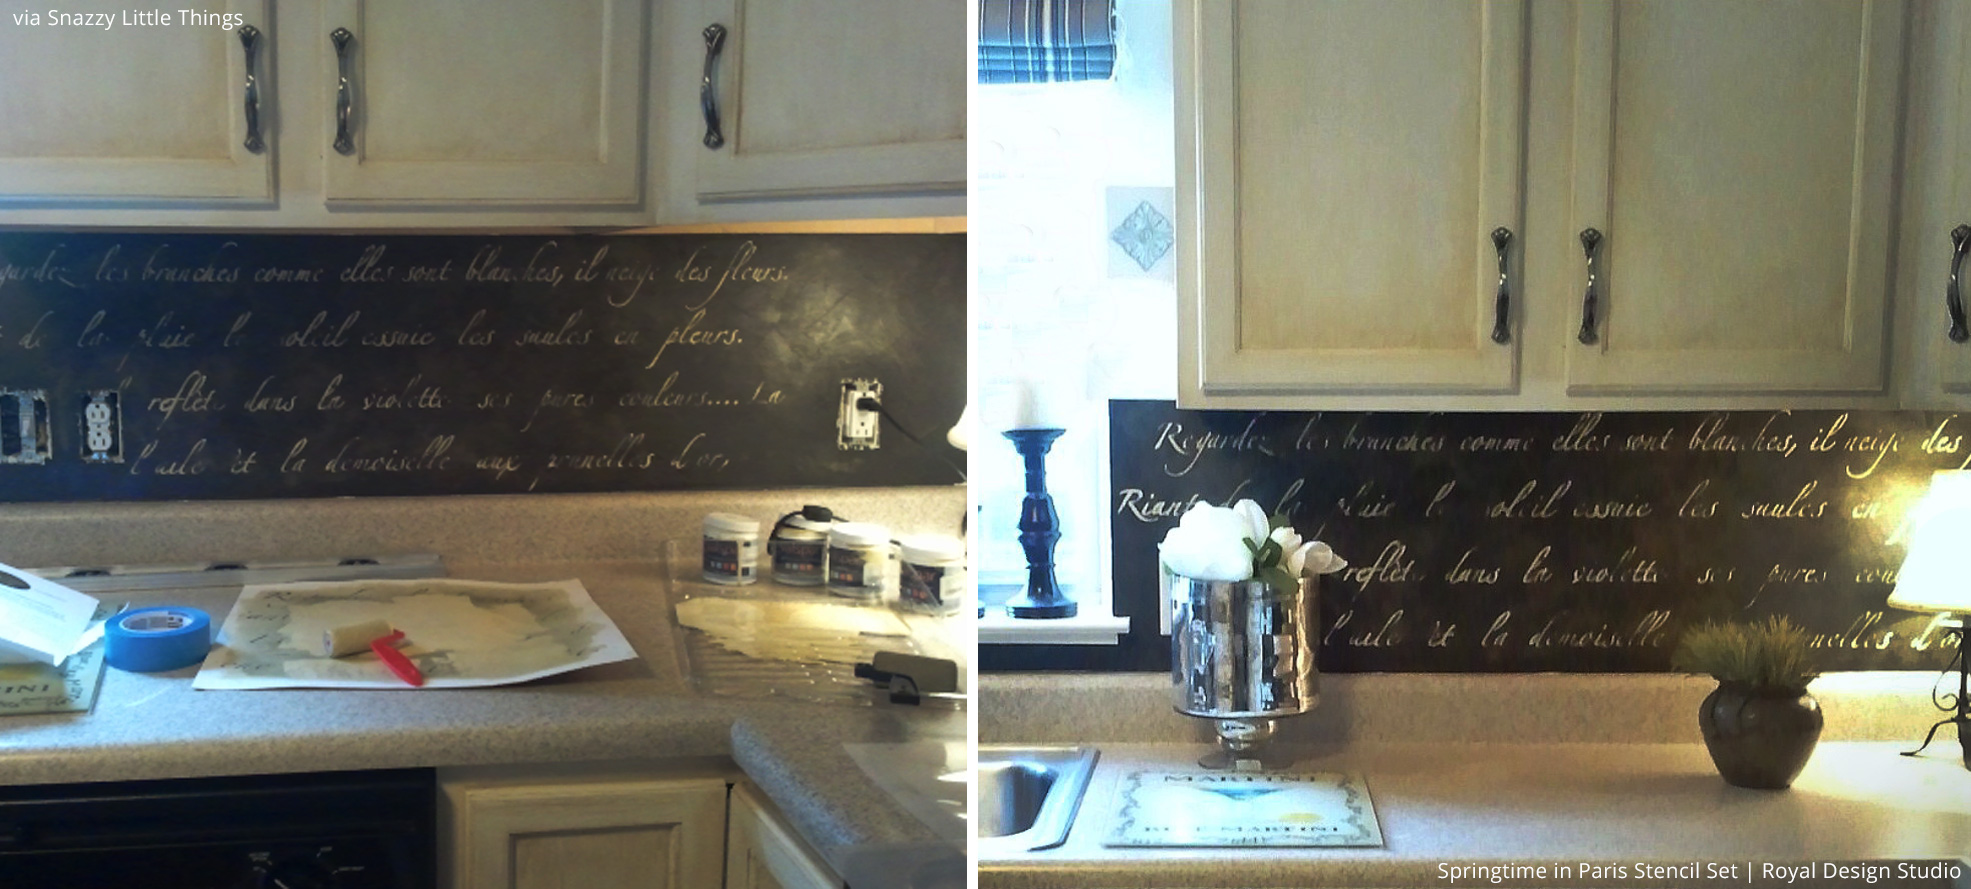 6 trendy wall decorating ideas with lettering stencils paint paint your kitchen backsplash with lettering stencils royal design studio wall stencils amipublicfo Gallery